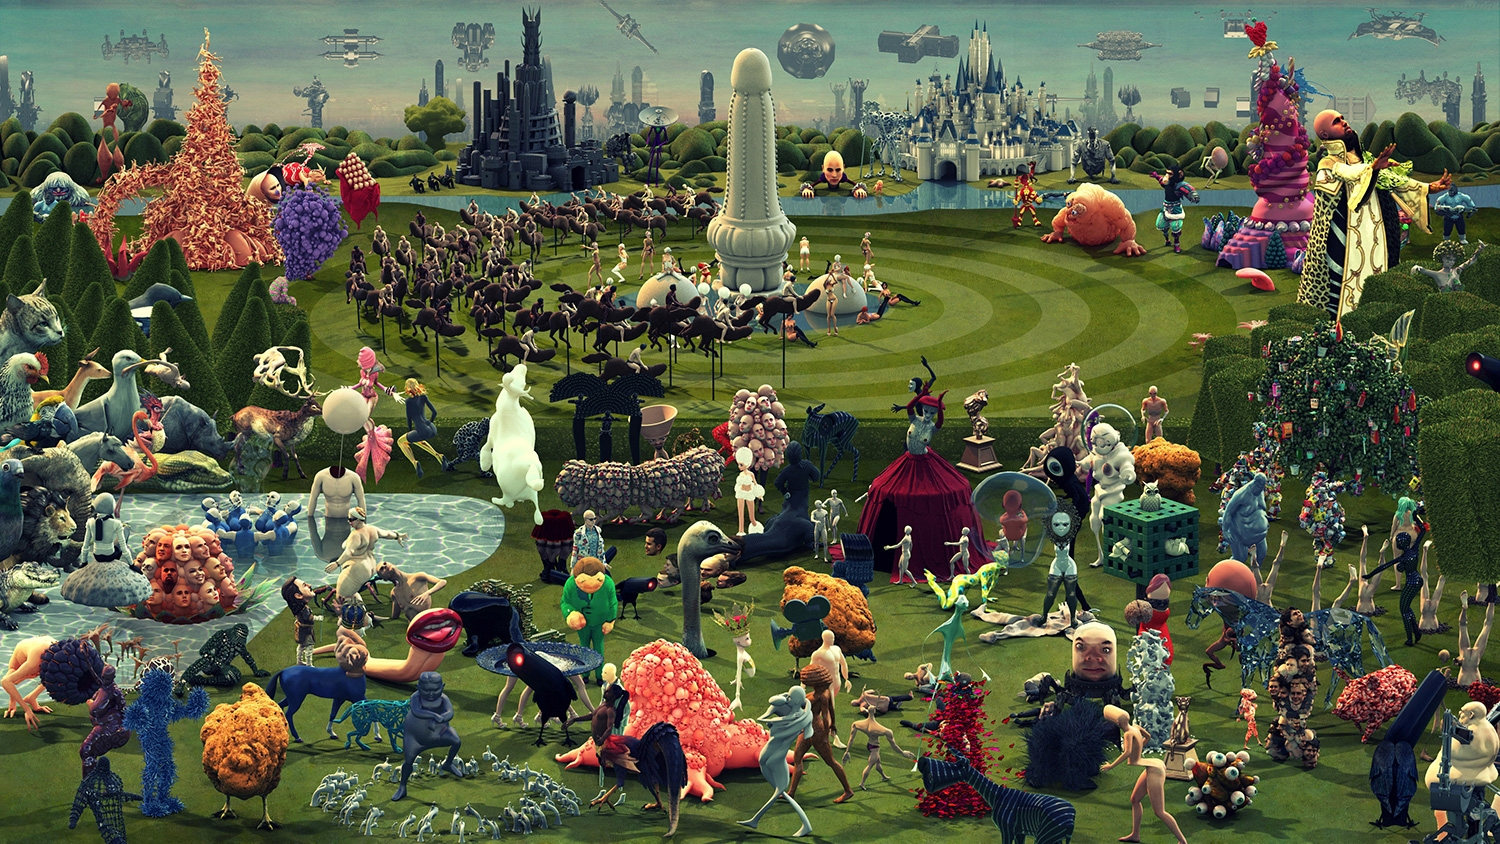 This Animated Version Of Hieronymus Bosch 39 S Painting Succeeds In Being Even More Weird